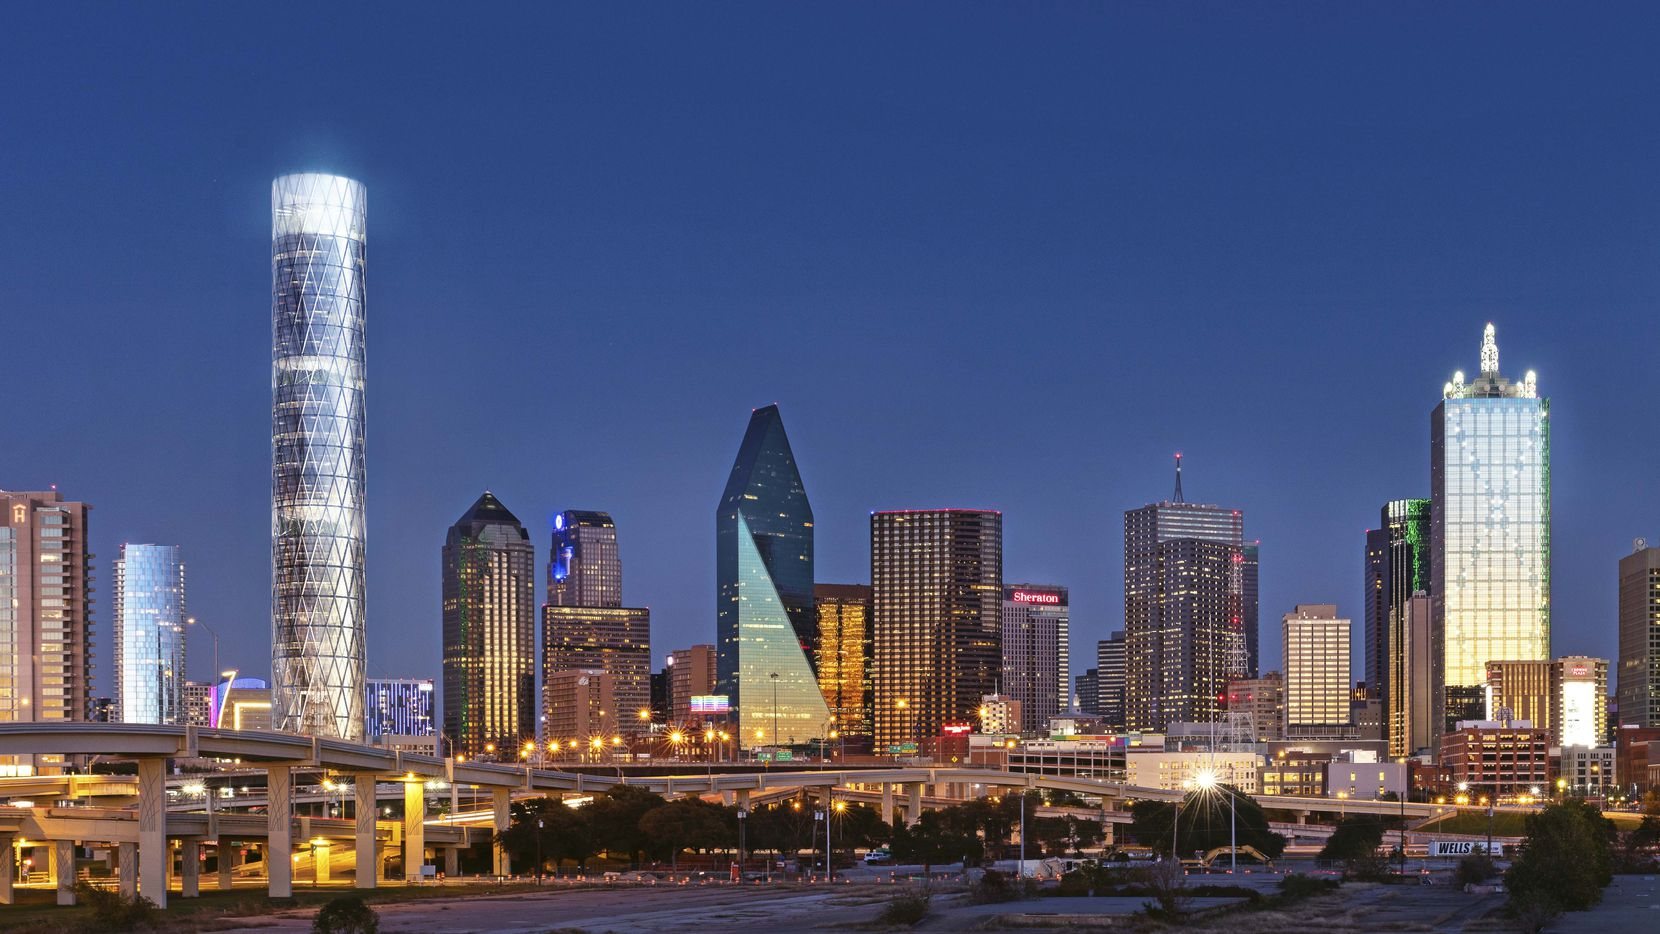 London-based Foster + Partners designed the round office tower for a vacant block on the north side of downtown Dallas.